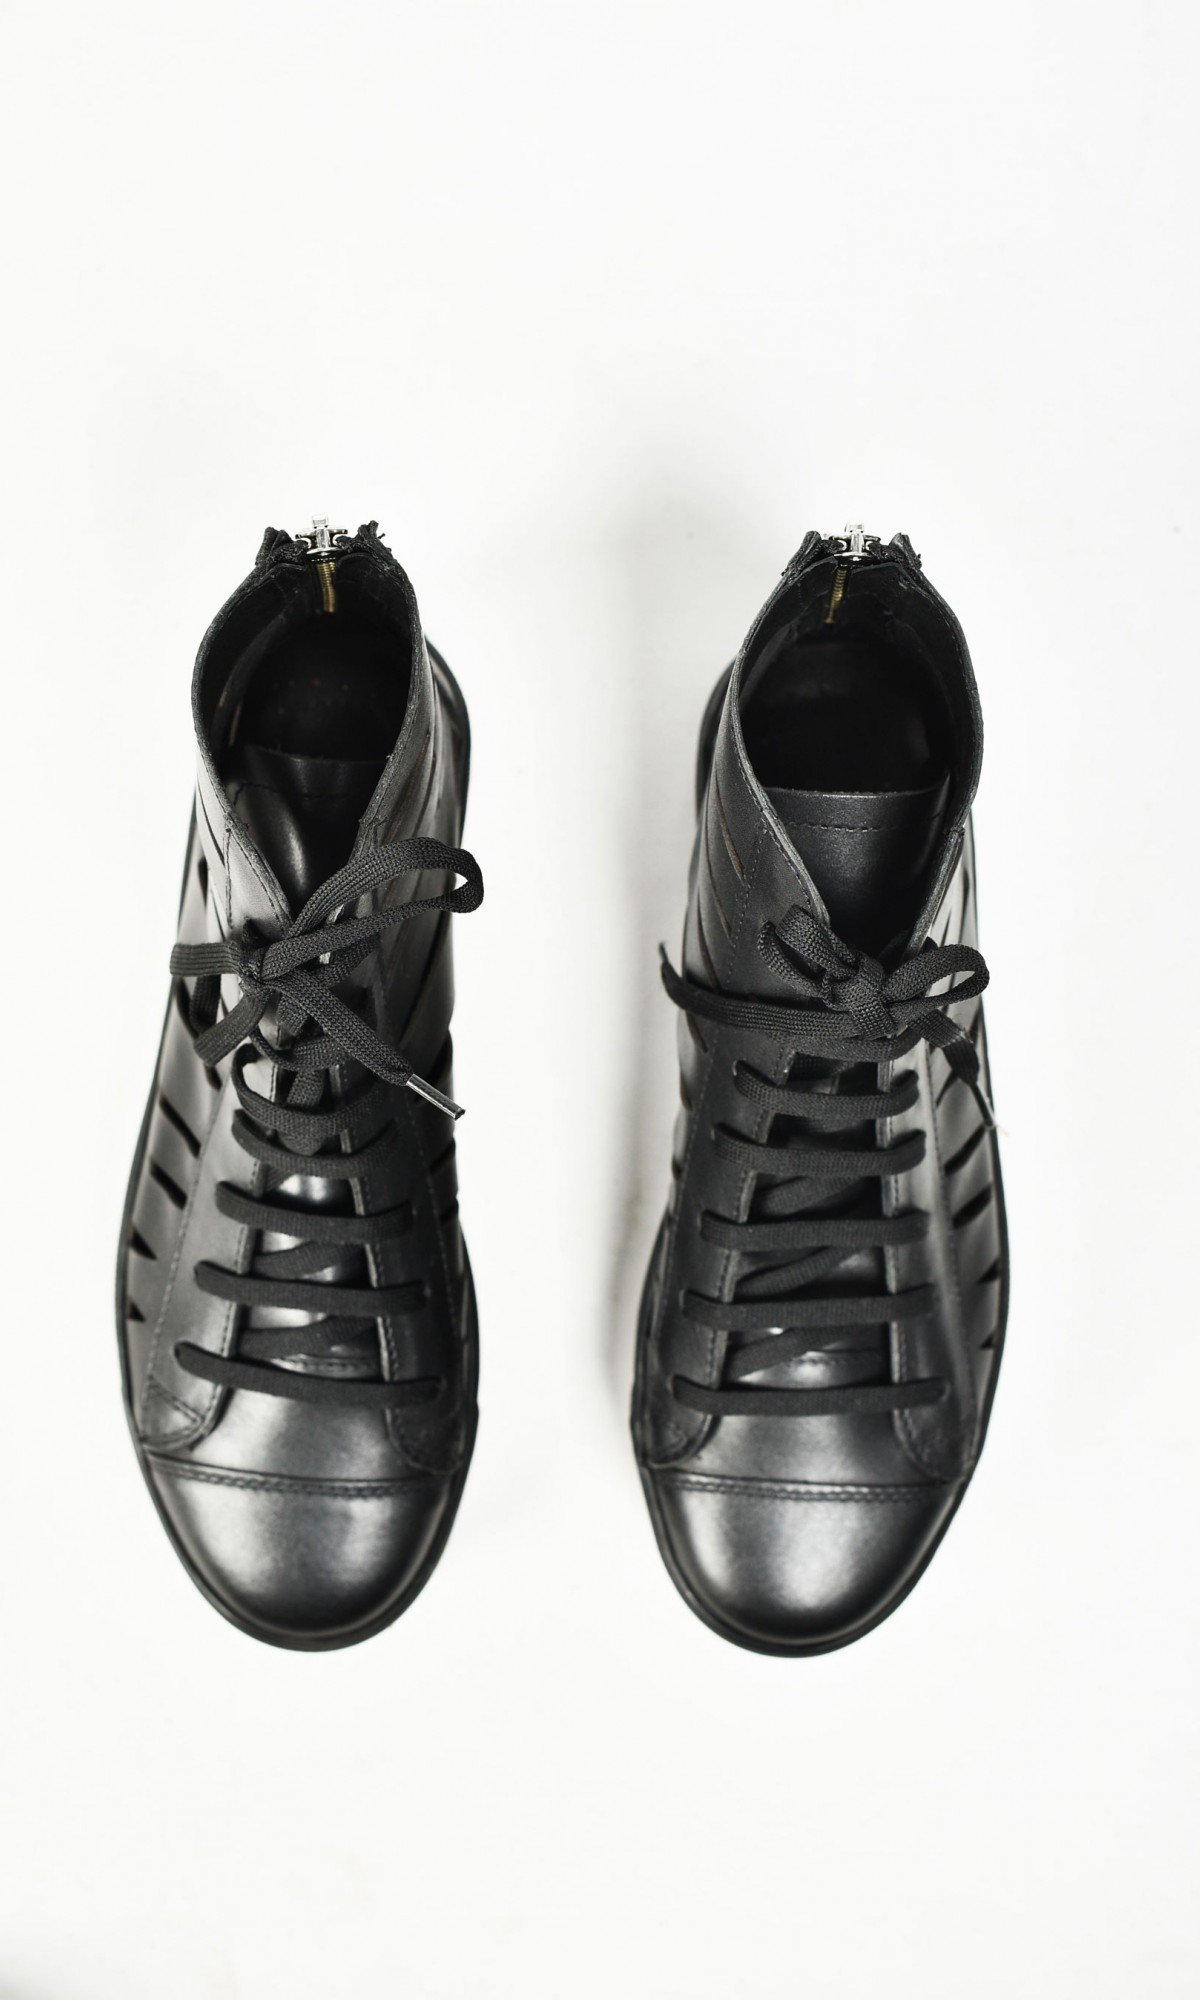 All Black Cutout High Leather Sneakers A15728